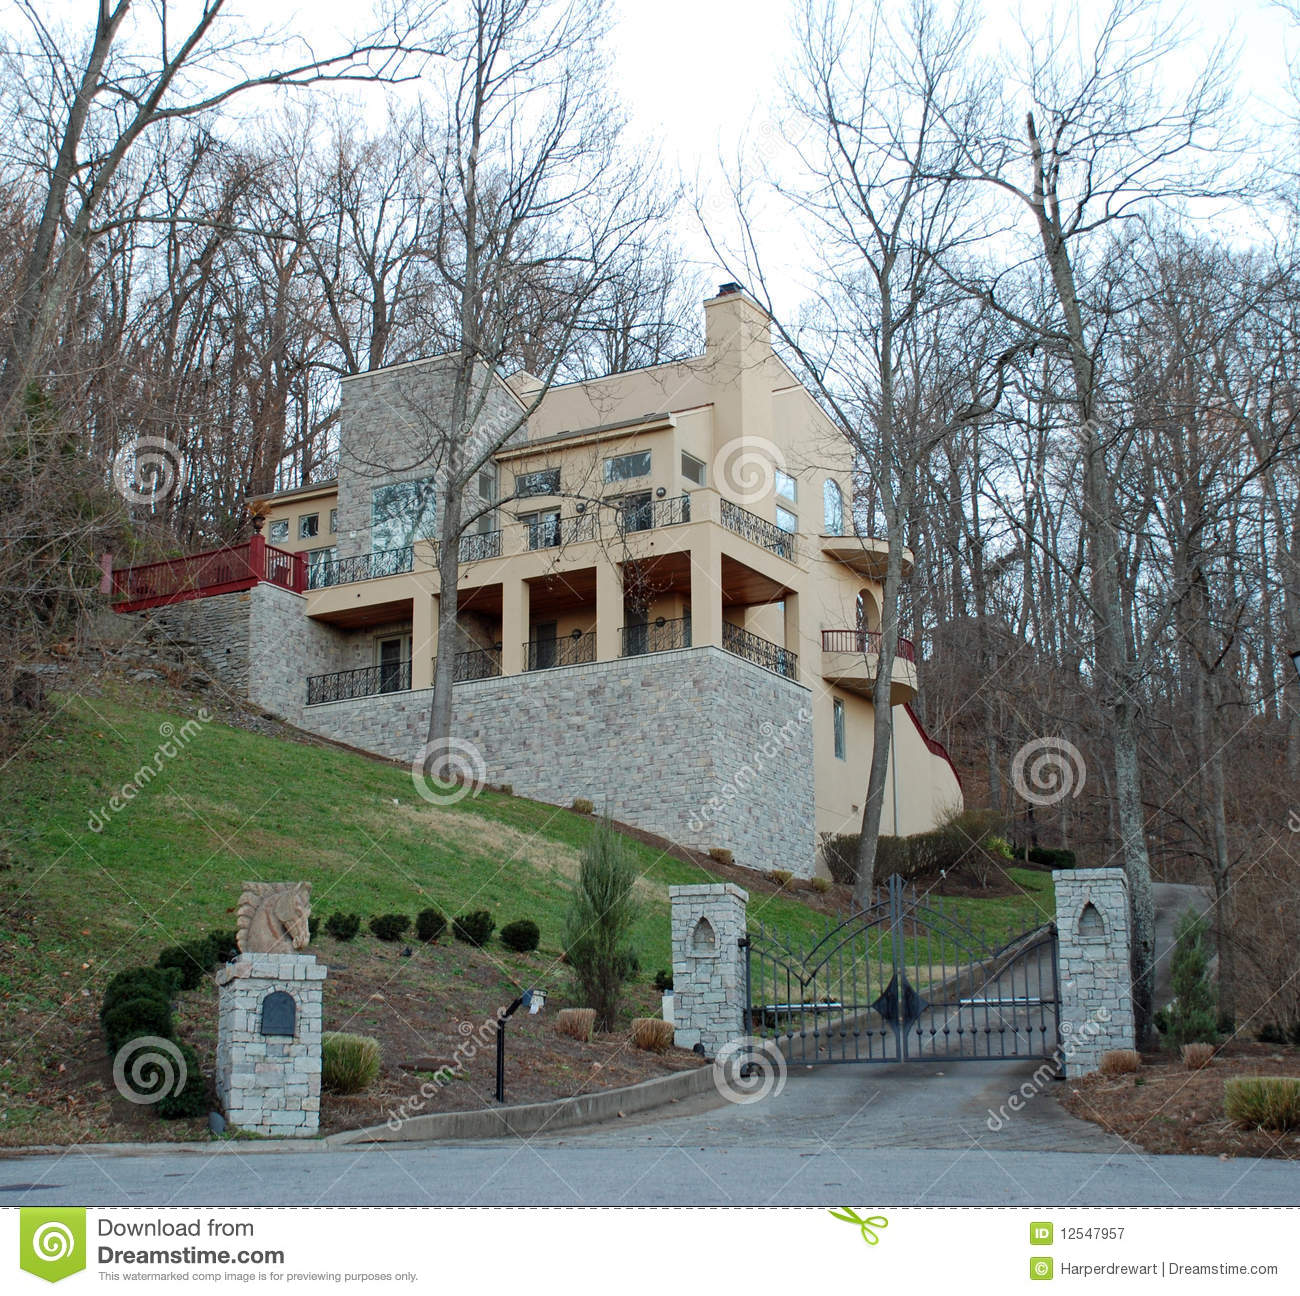 Modern hillside stone luxury home 36 royalty free stock photography image 12547957 - Landscaping modern huis ...